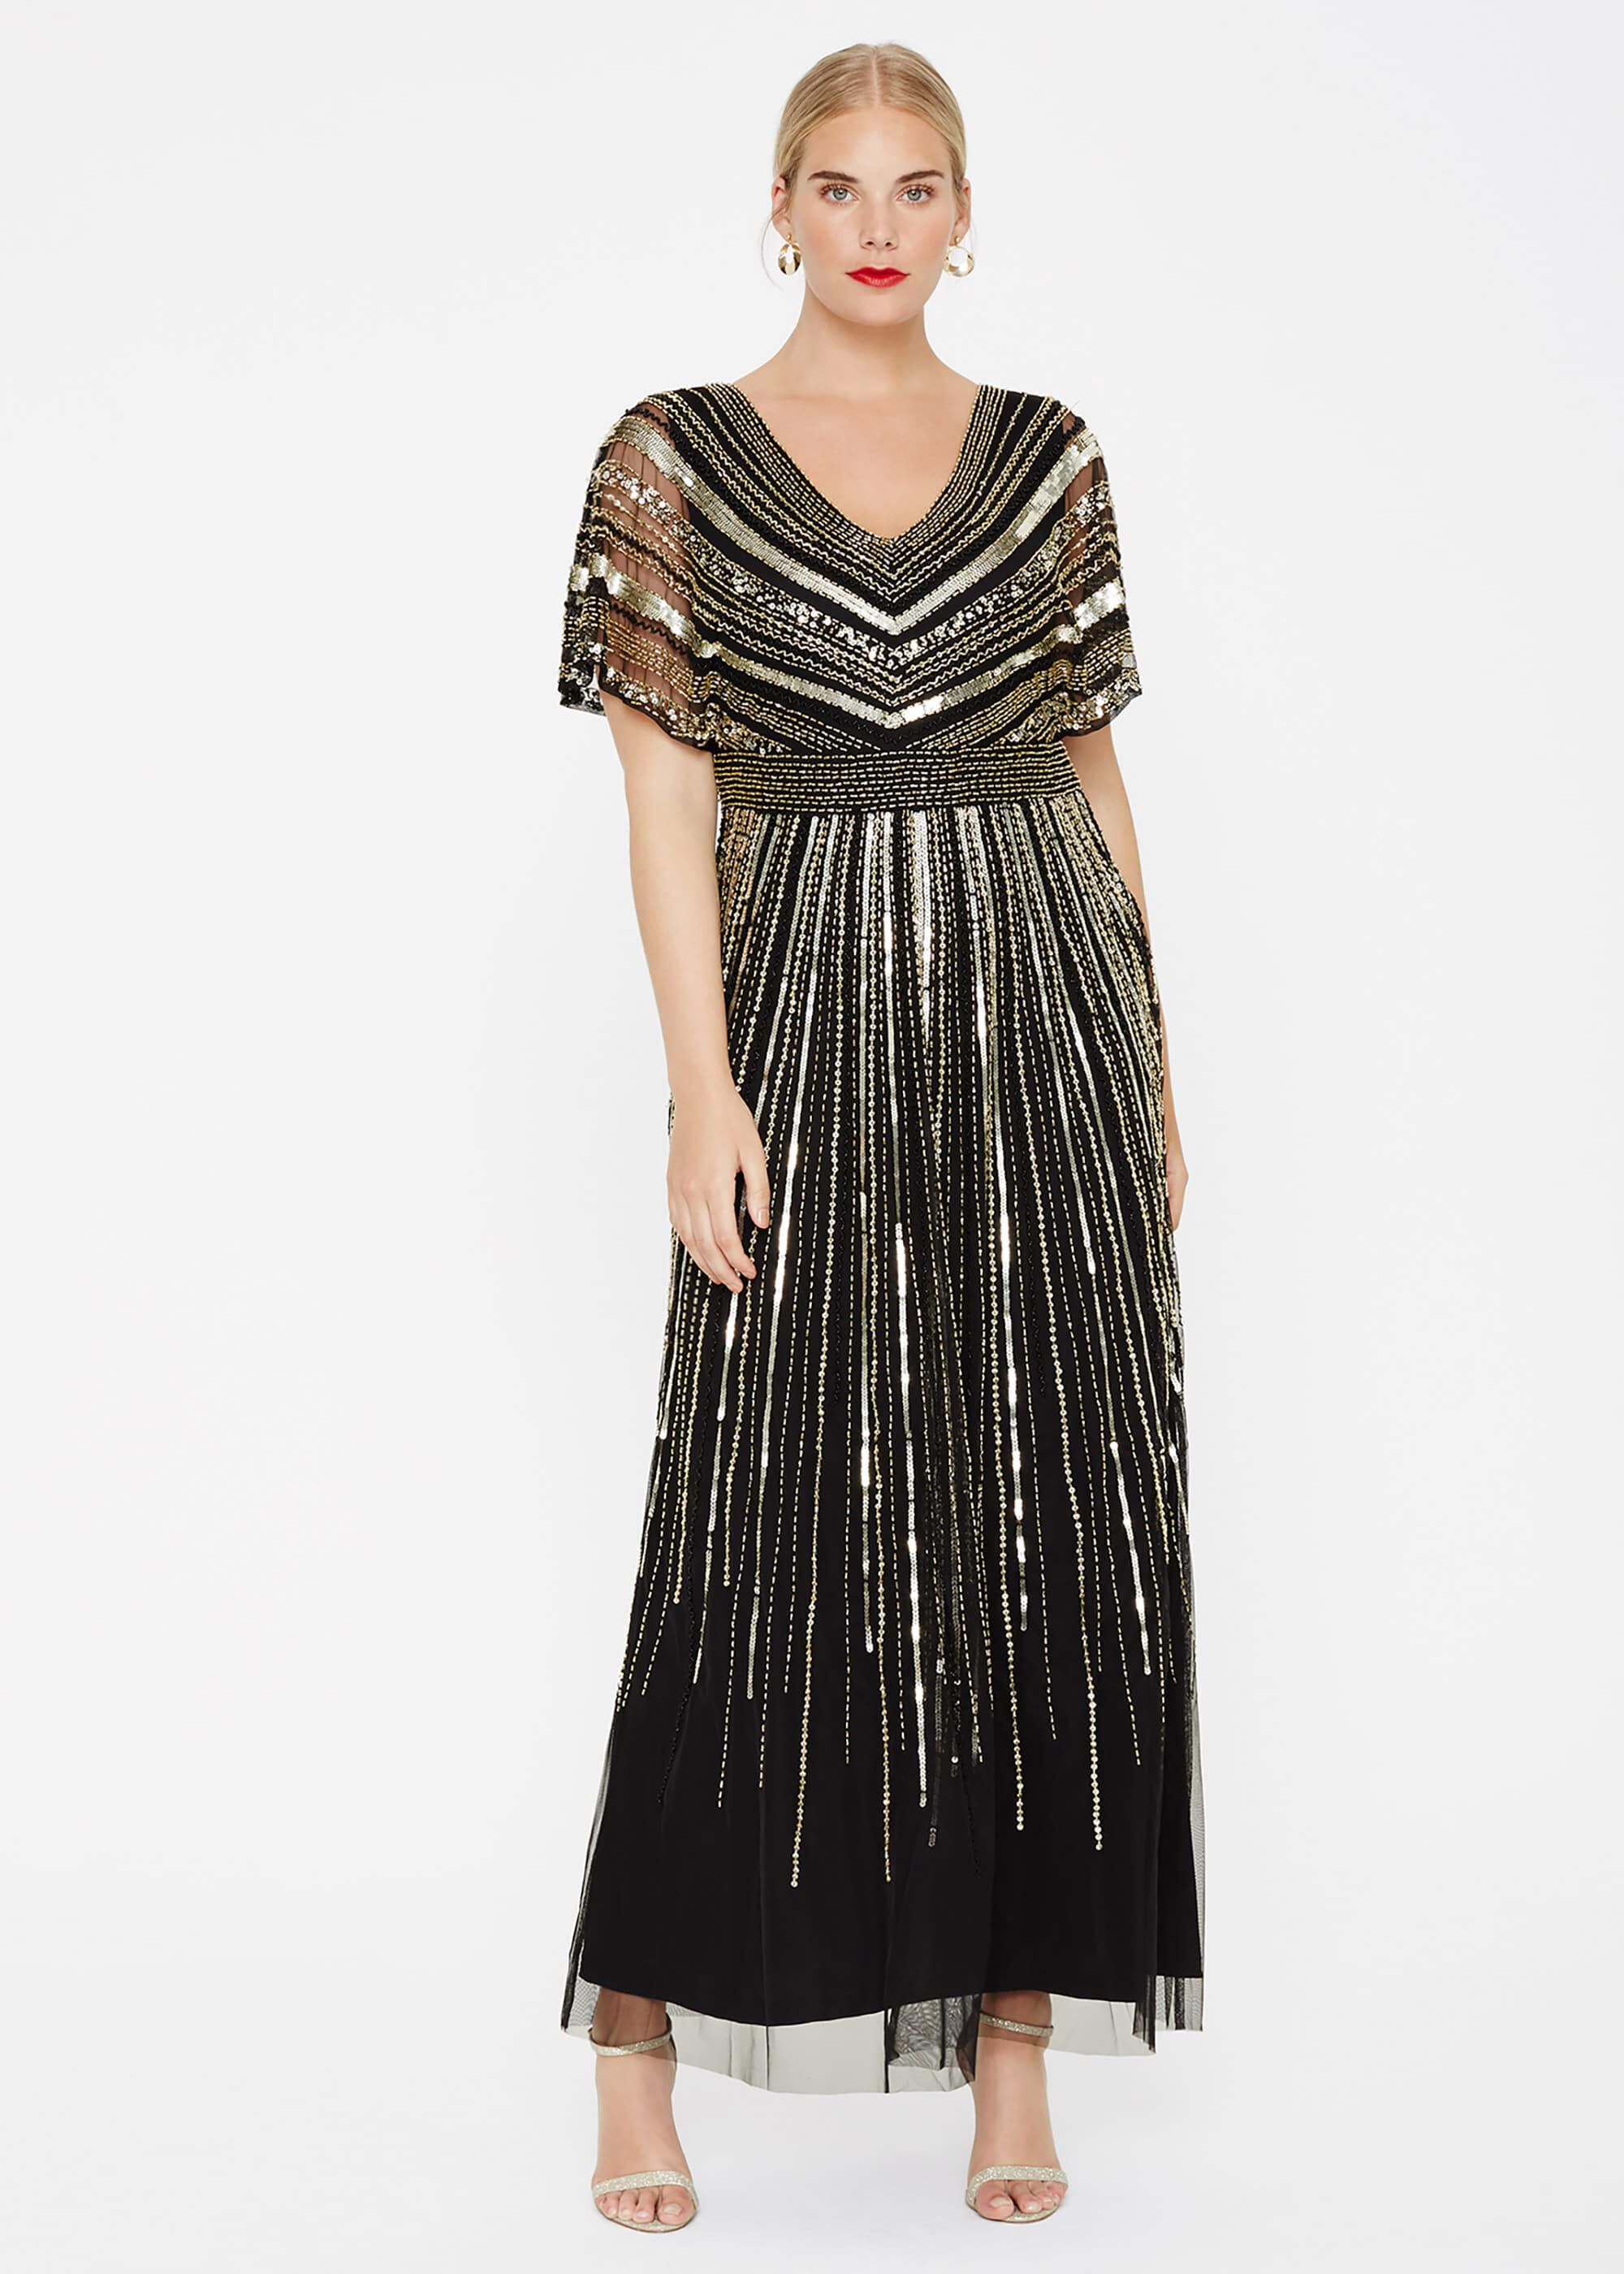 Studio 8 Avalon Beaded Maxi Dress, Black, Maxi, Occasion Dress